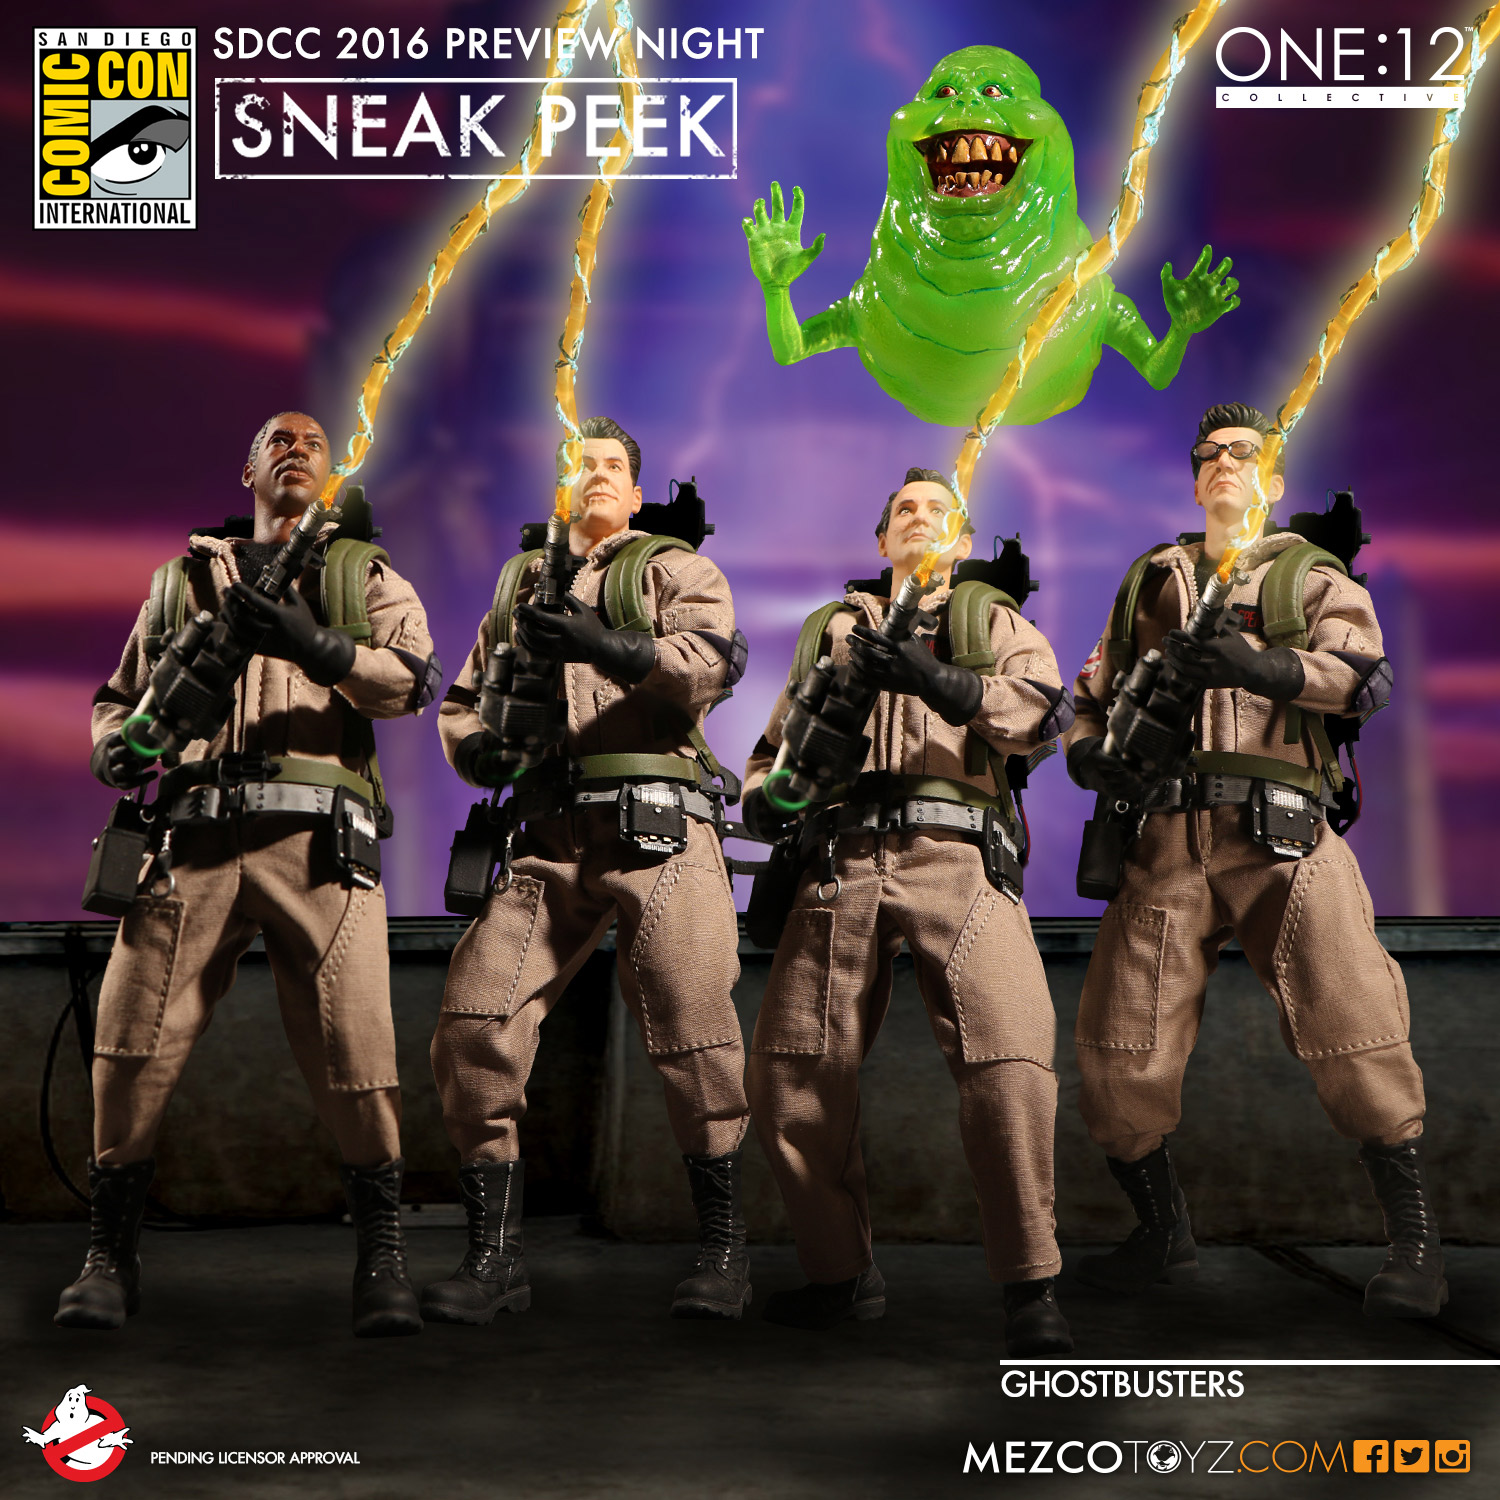 07-SDCC-Preview-Night-One12Ghostbusters